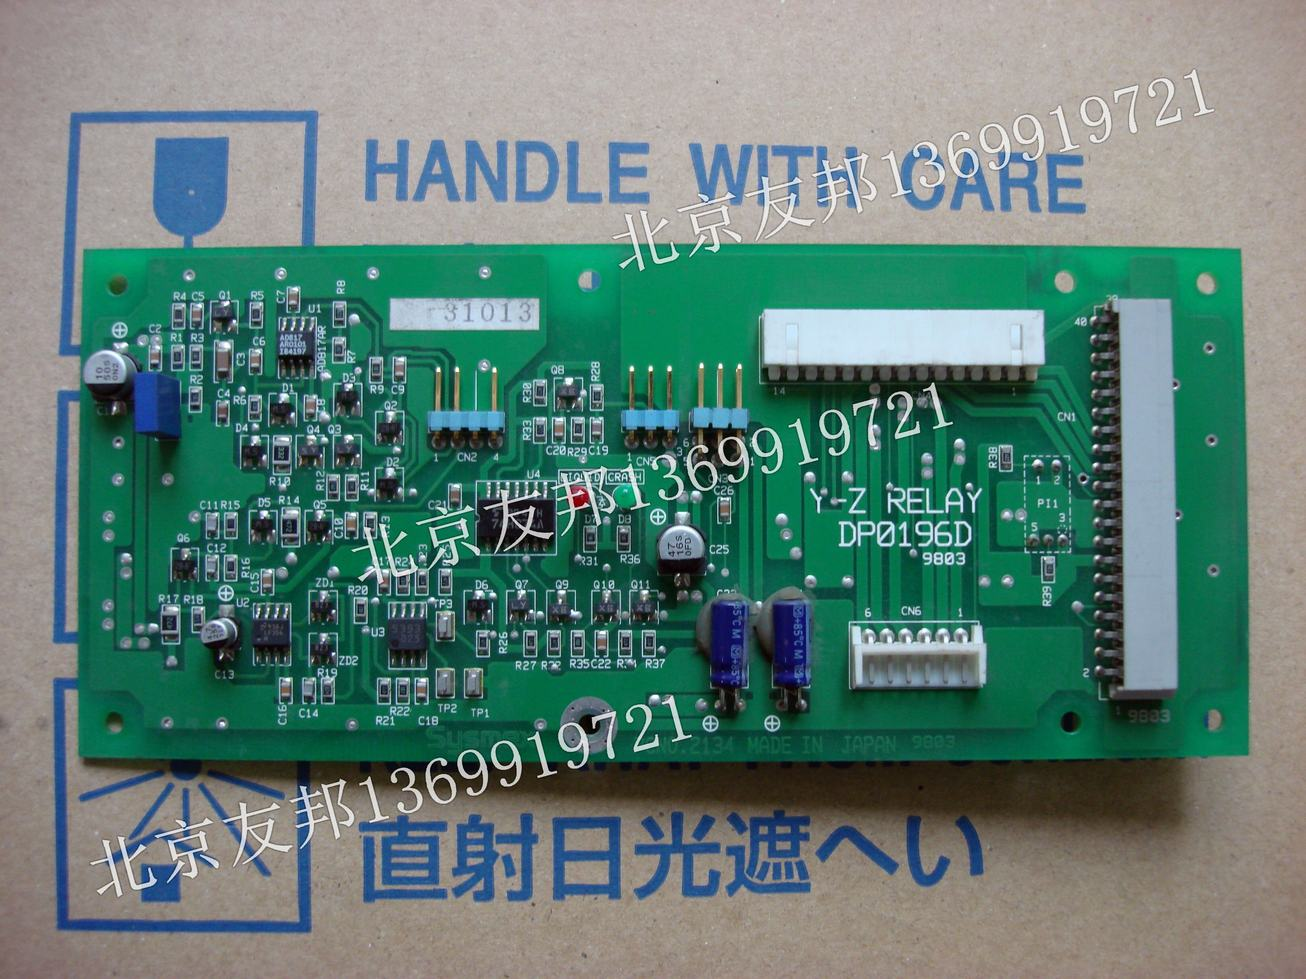 FOR Disassemble Sysmex Sysmex CA500 Suction Needle Control Board Y-Z Axis Control Board PCNO.2134FOR Disassemble Sysmex Sysmex CA500 Suction Needle Control Board Y-Z Axis Control Board PCNO.2134